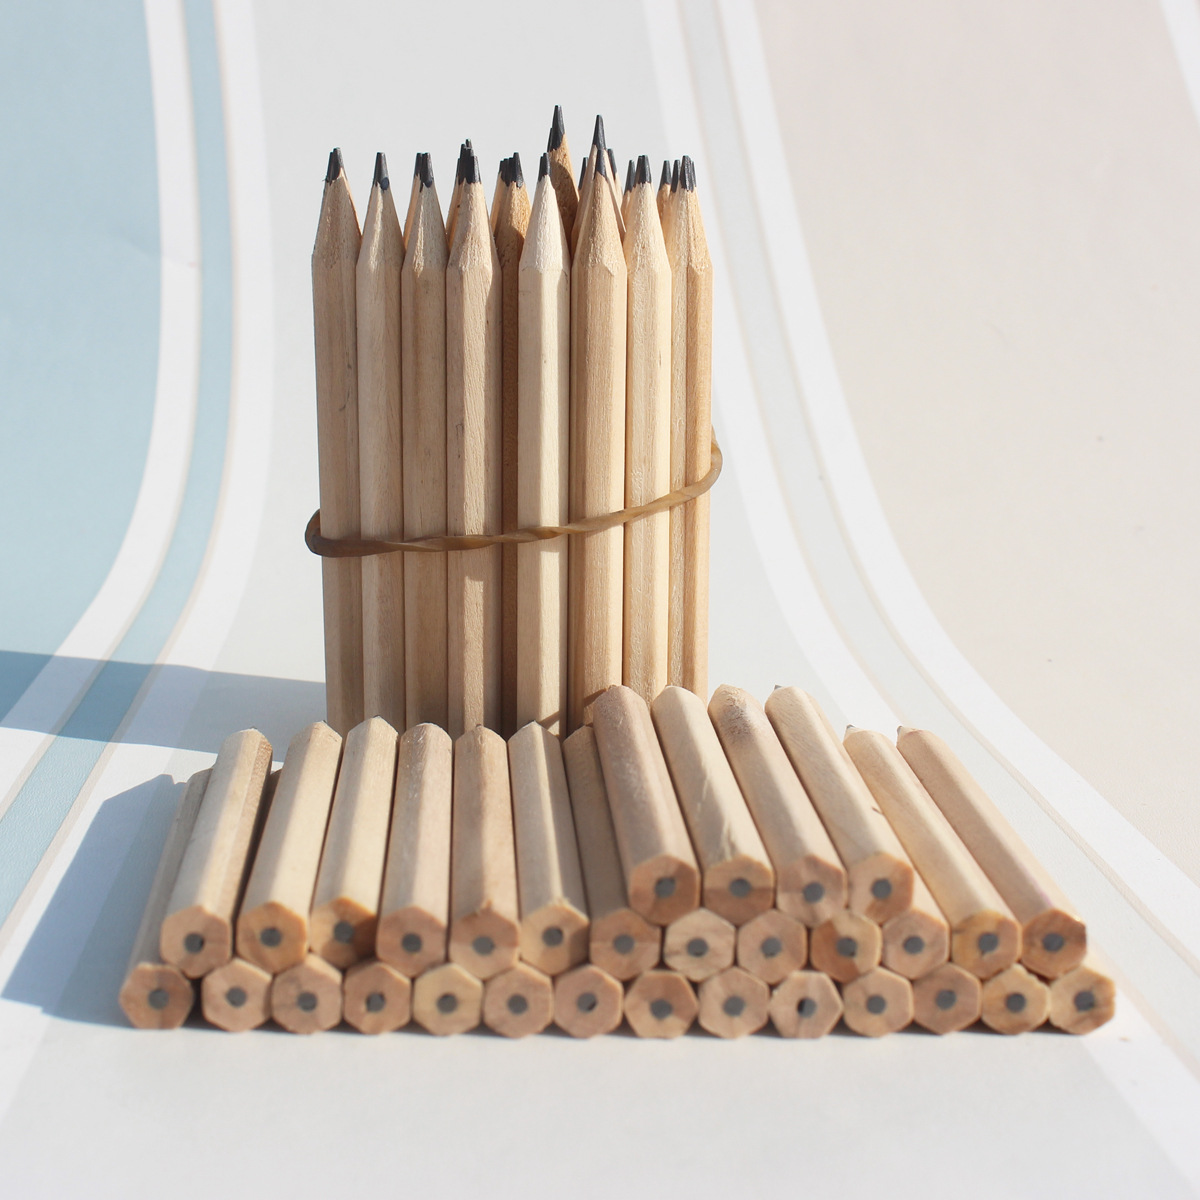 3.5inch 100pcs/Lot  HB Wood Pencil, Students Sketch Pencil Stationery School Items Supply Eco-friendly Facotry Wholesales